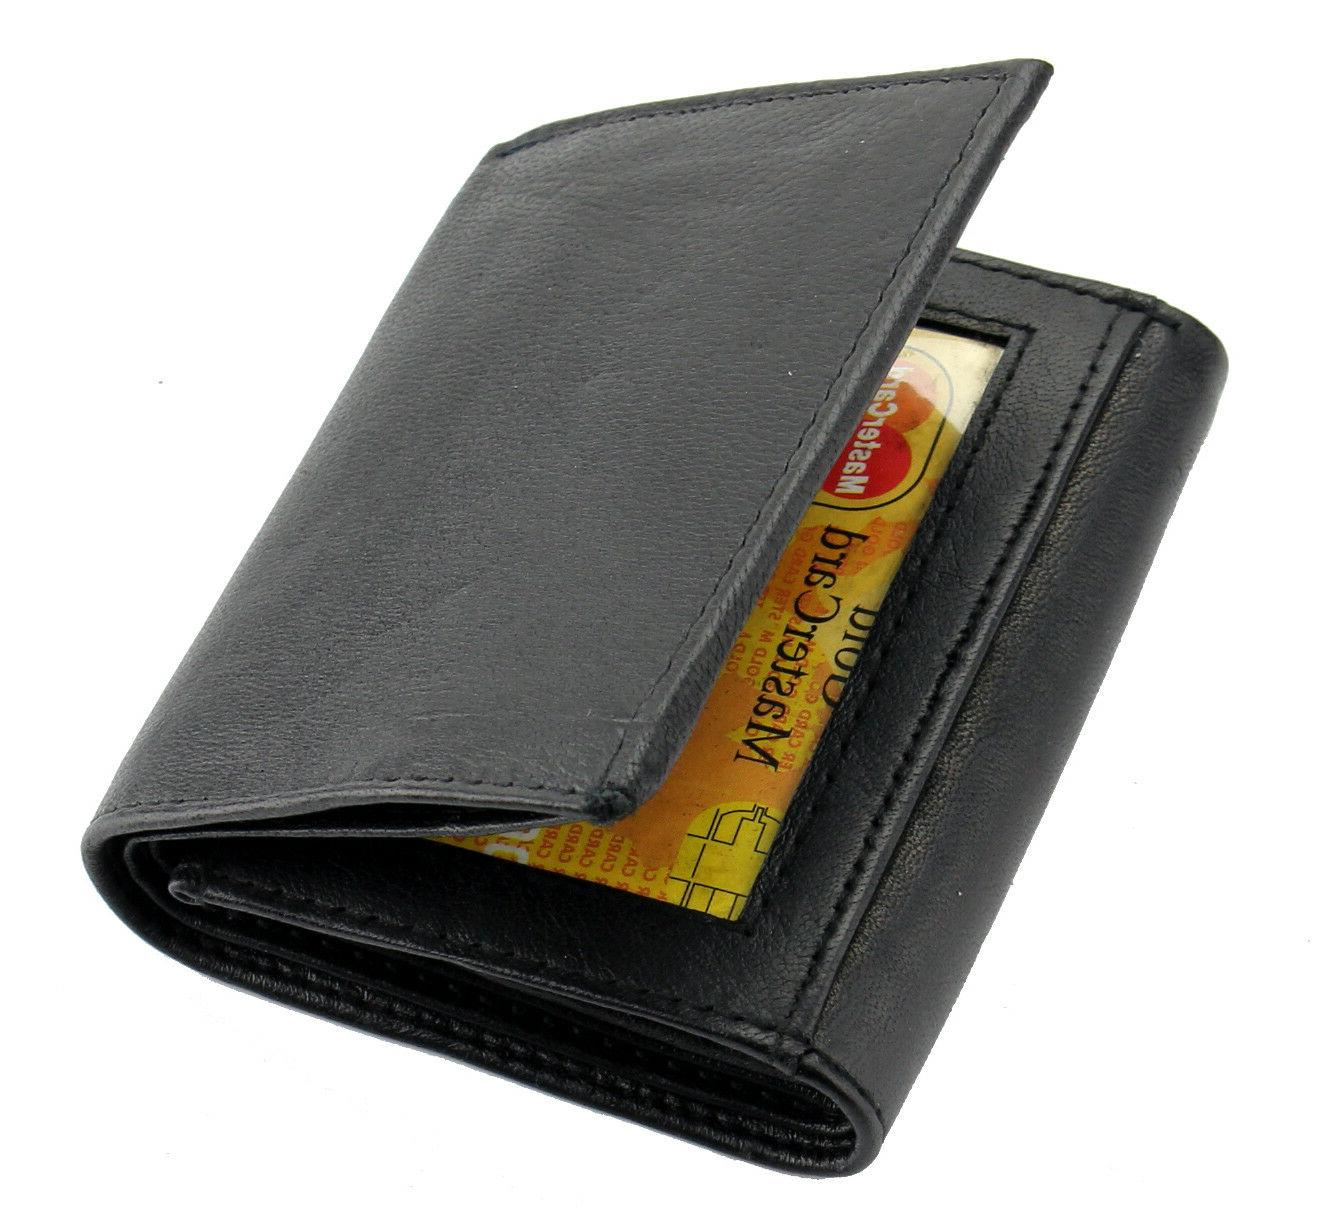 New Black Leather Trifold Wallet ID Credit Card Holder